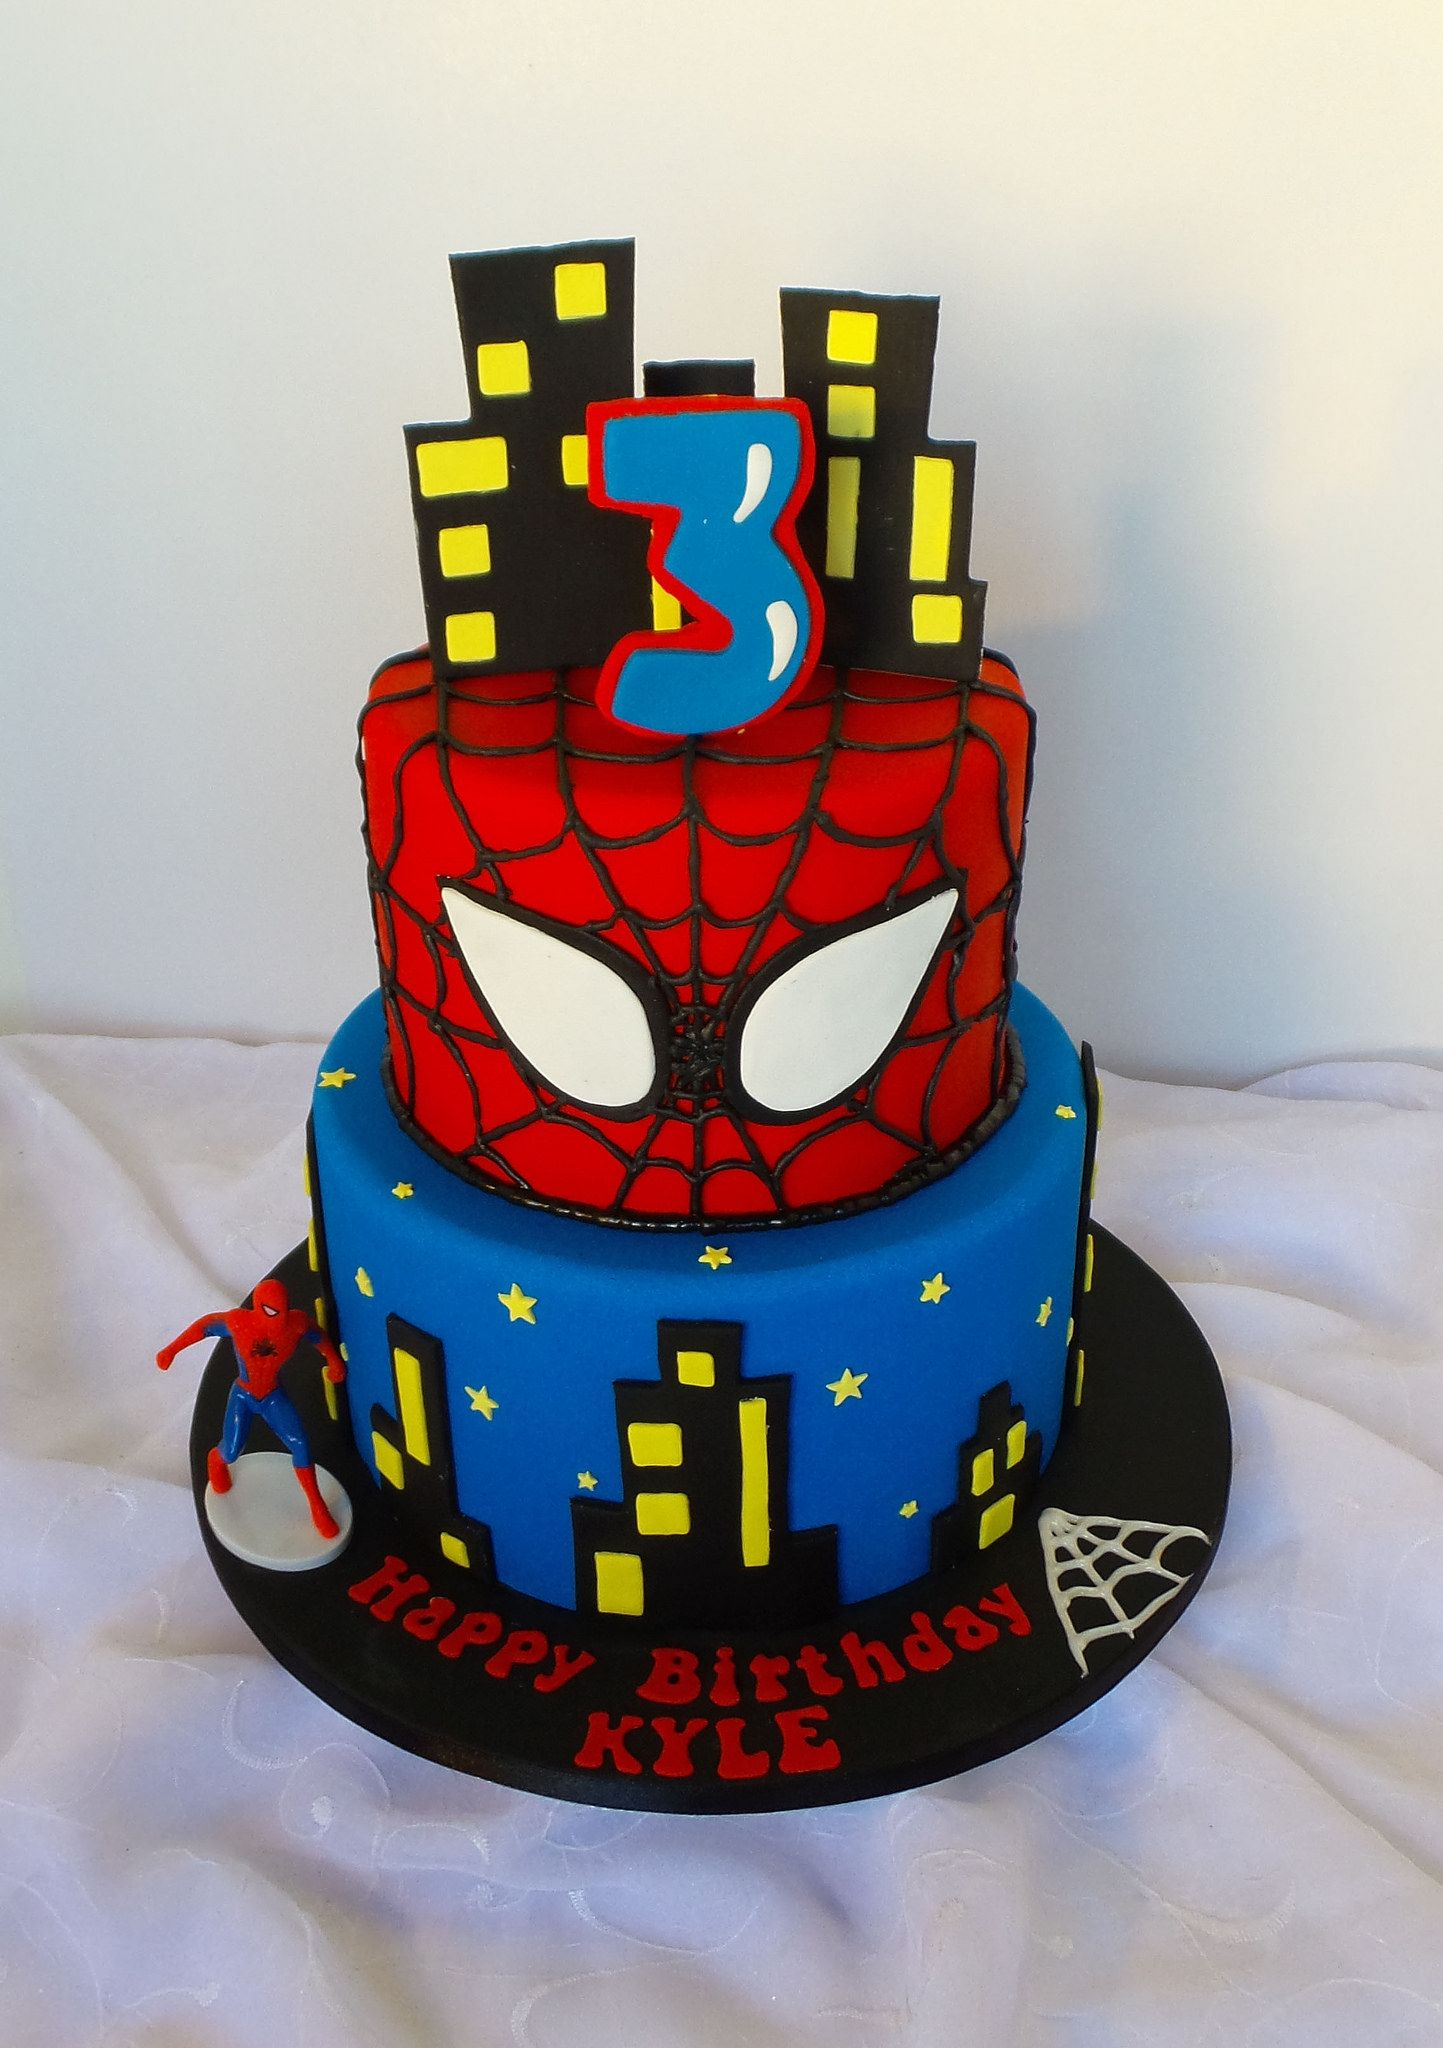 Birthday Cake Ideas Spiderman : Two tier Spiderman themed birthday cake Birthday cake ...